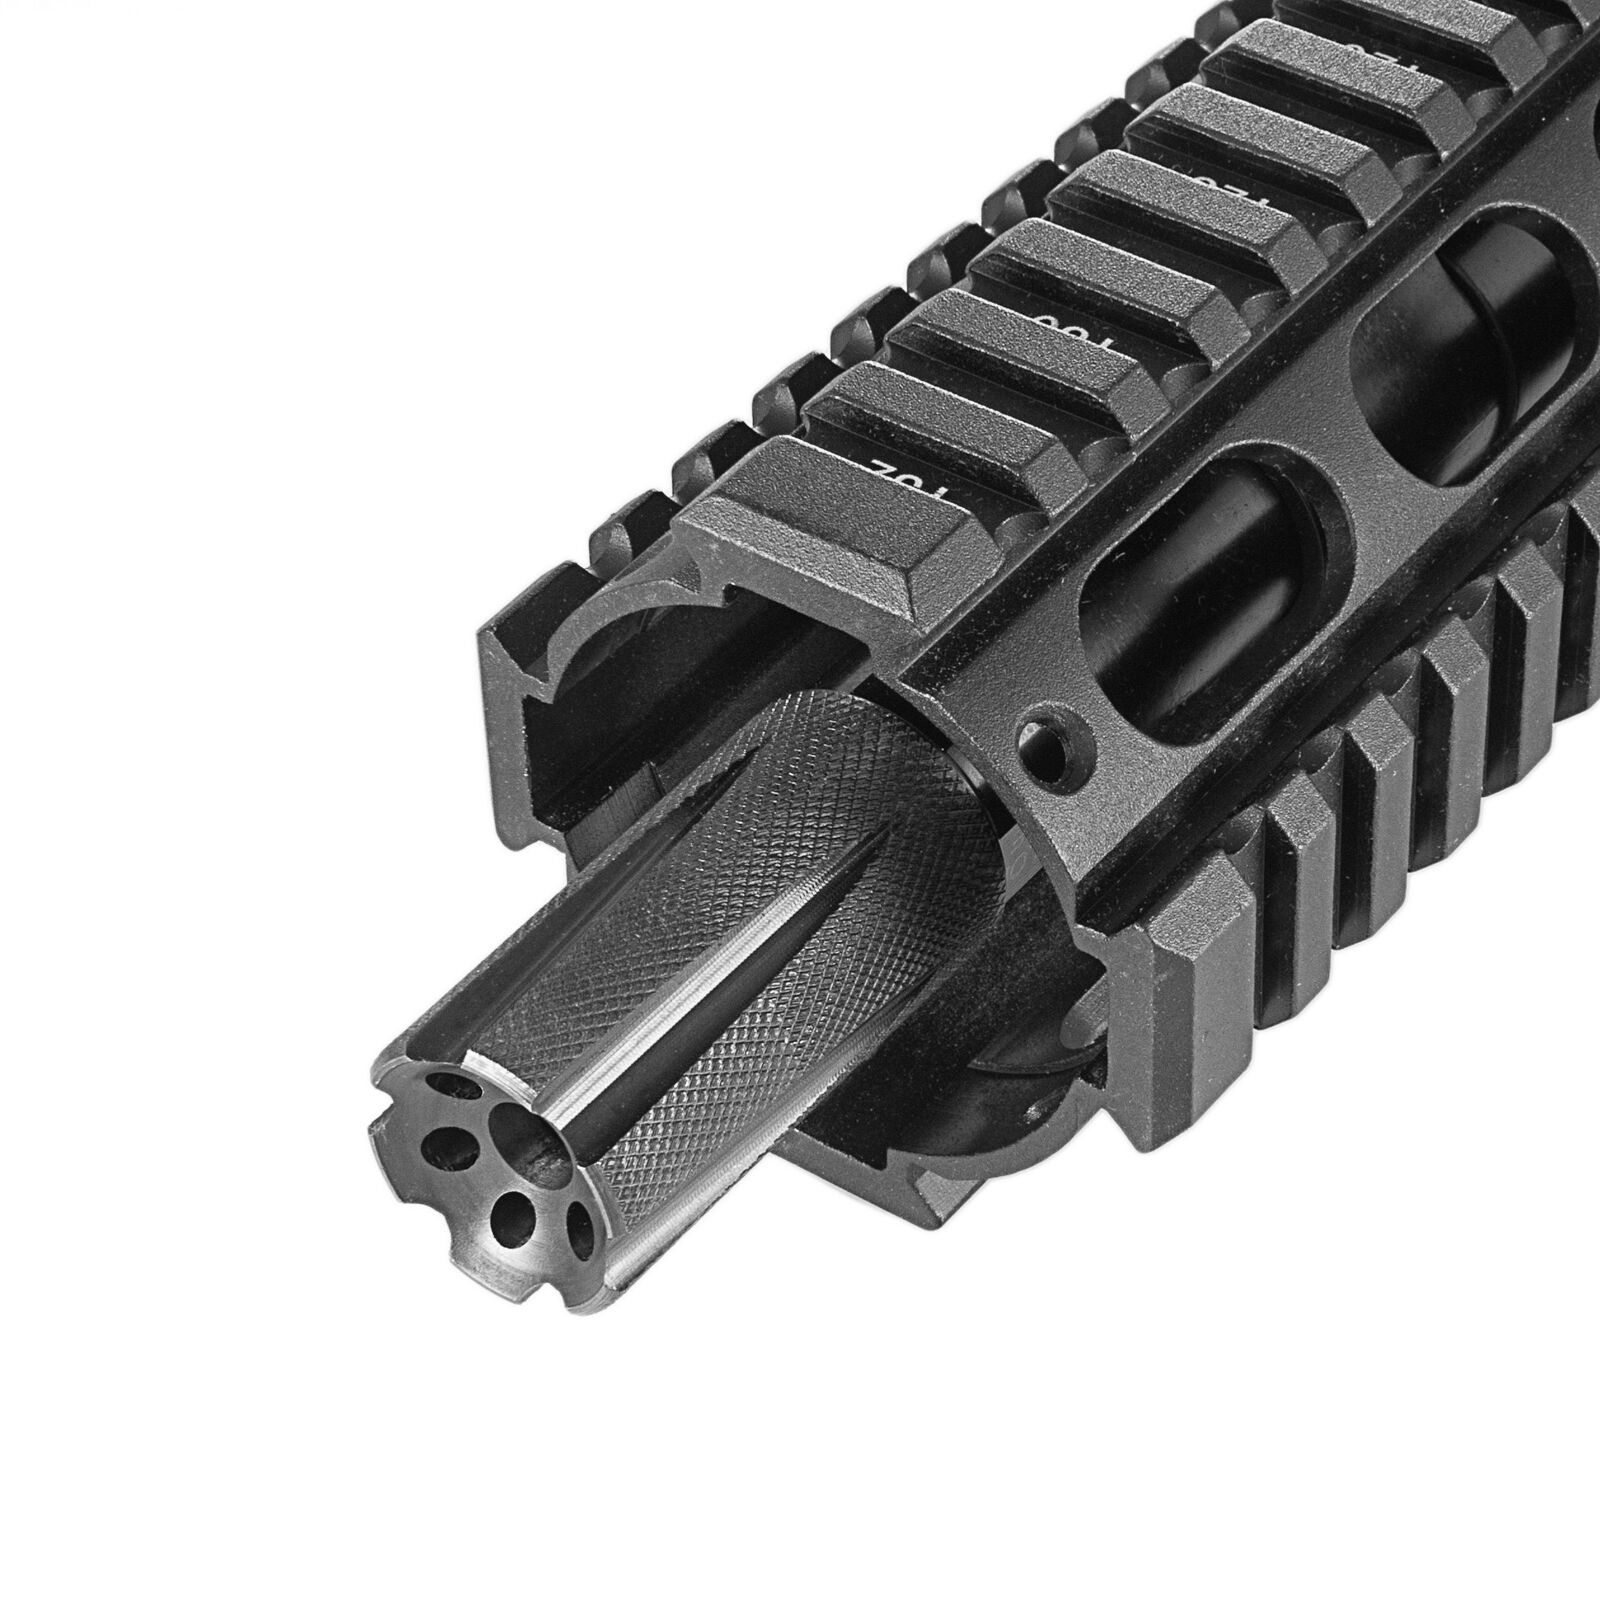 Integrated Muzzle Adapter Coupling System